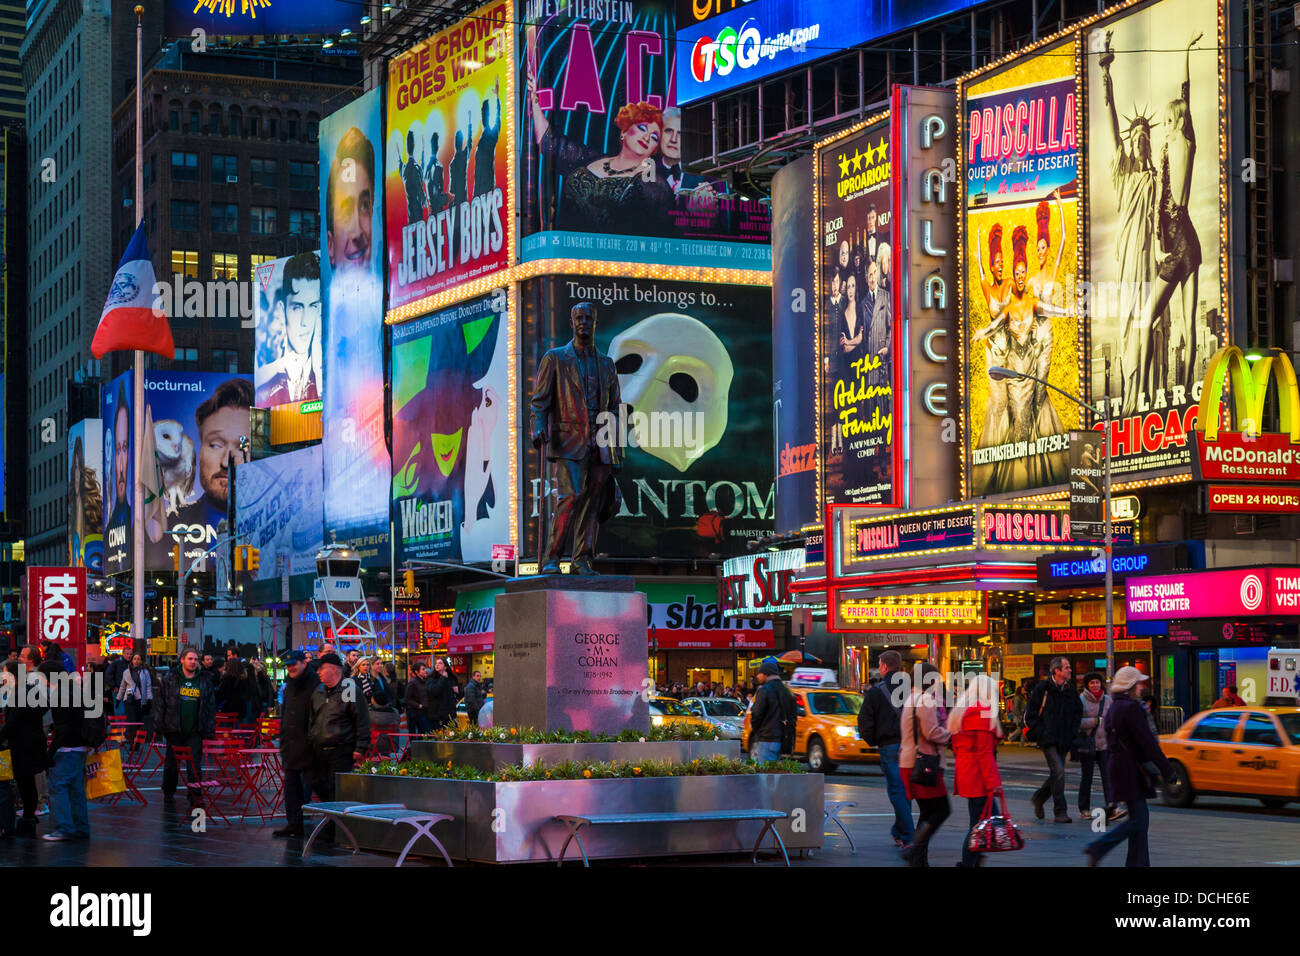 Billboards for Broadway shows in Times Square, New York City - Stock Image